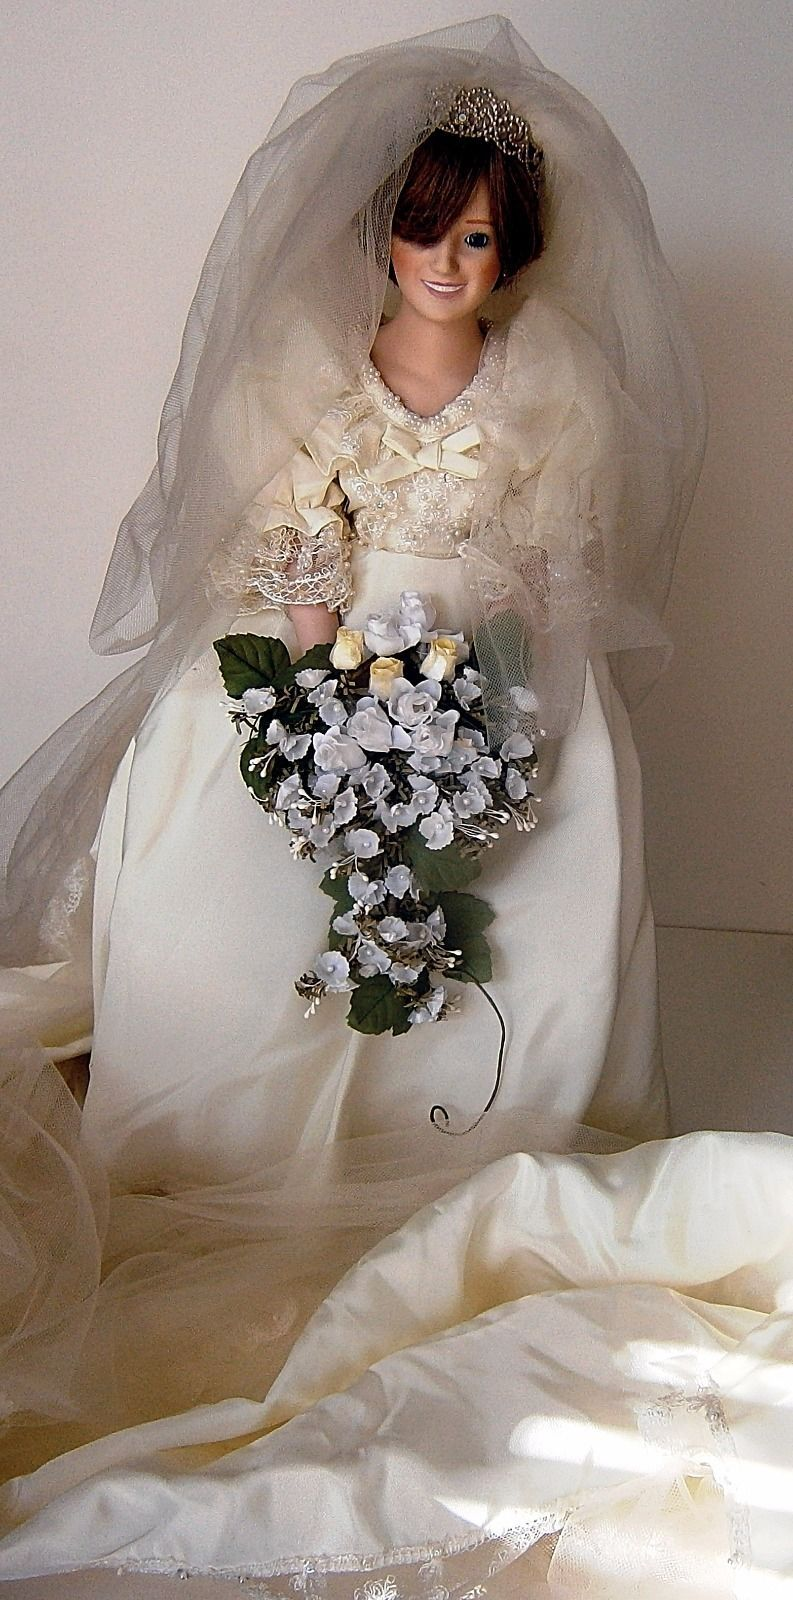 The Princess Diana Bride Doll by Danbury Mint image 4